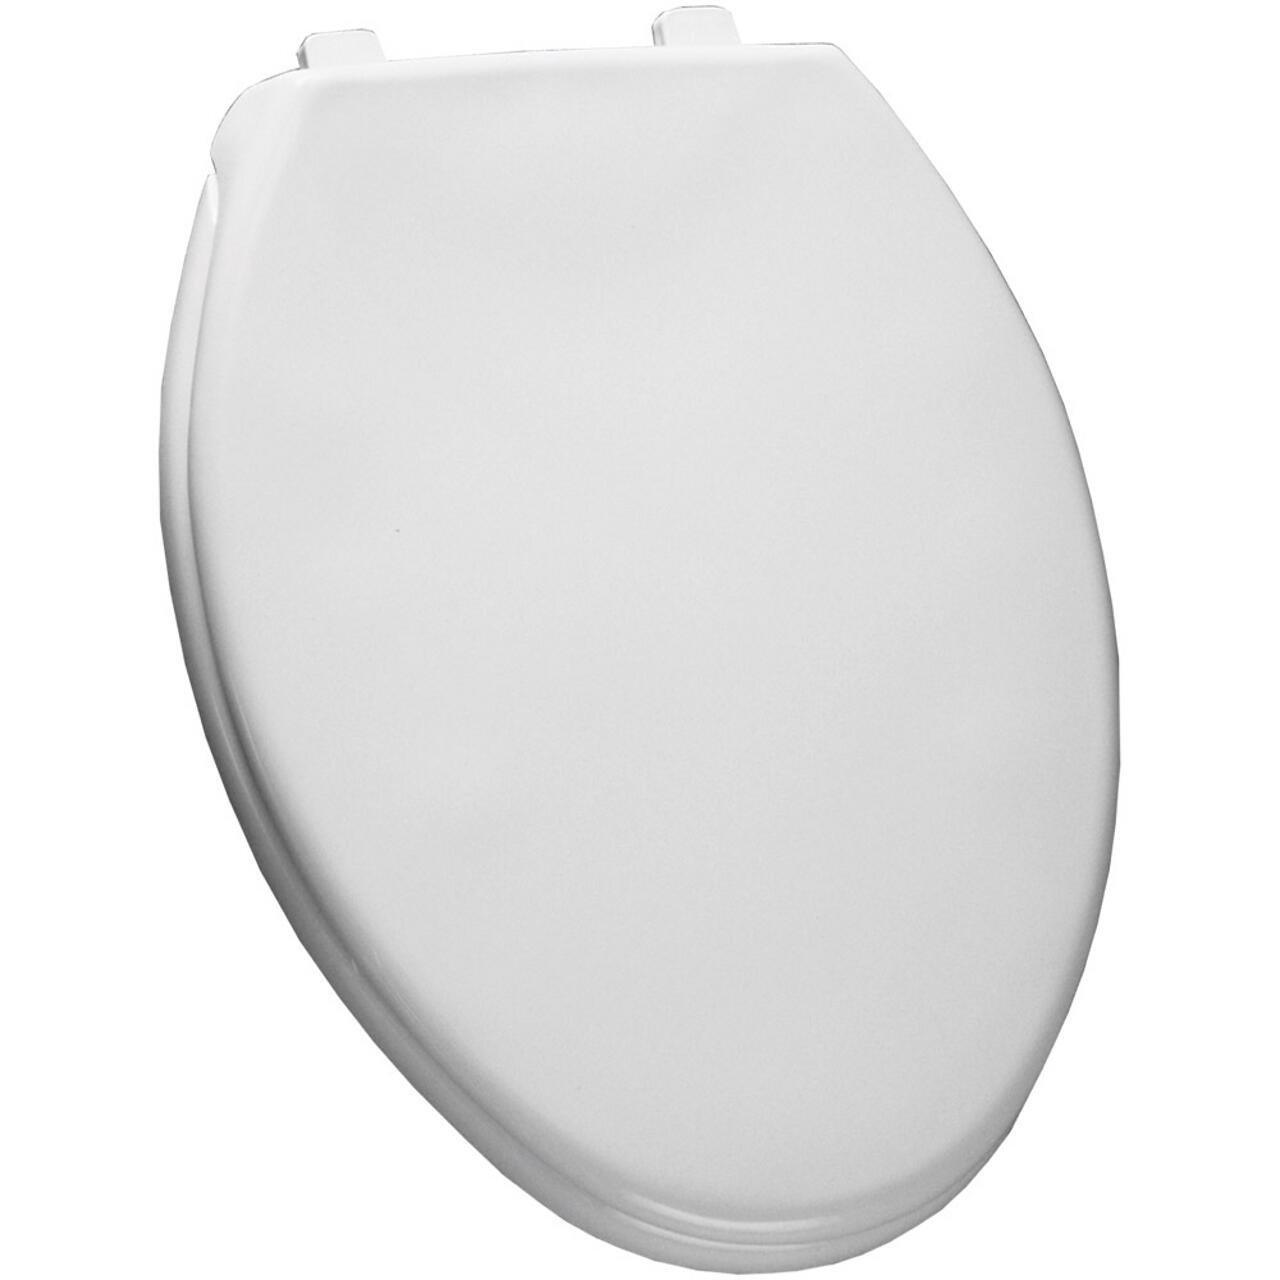 Church 380TCA 000 Elongated Toilet Seat with Cover, White